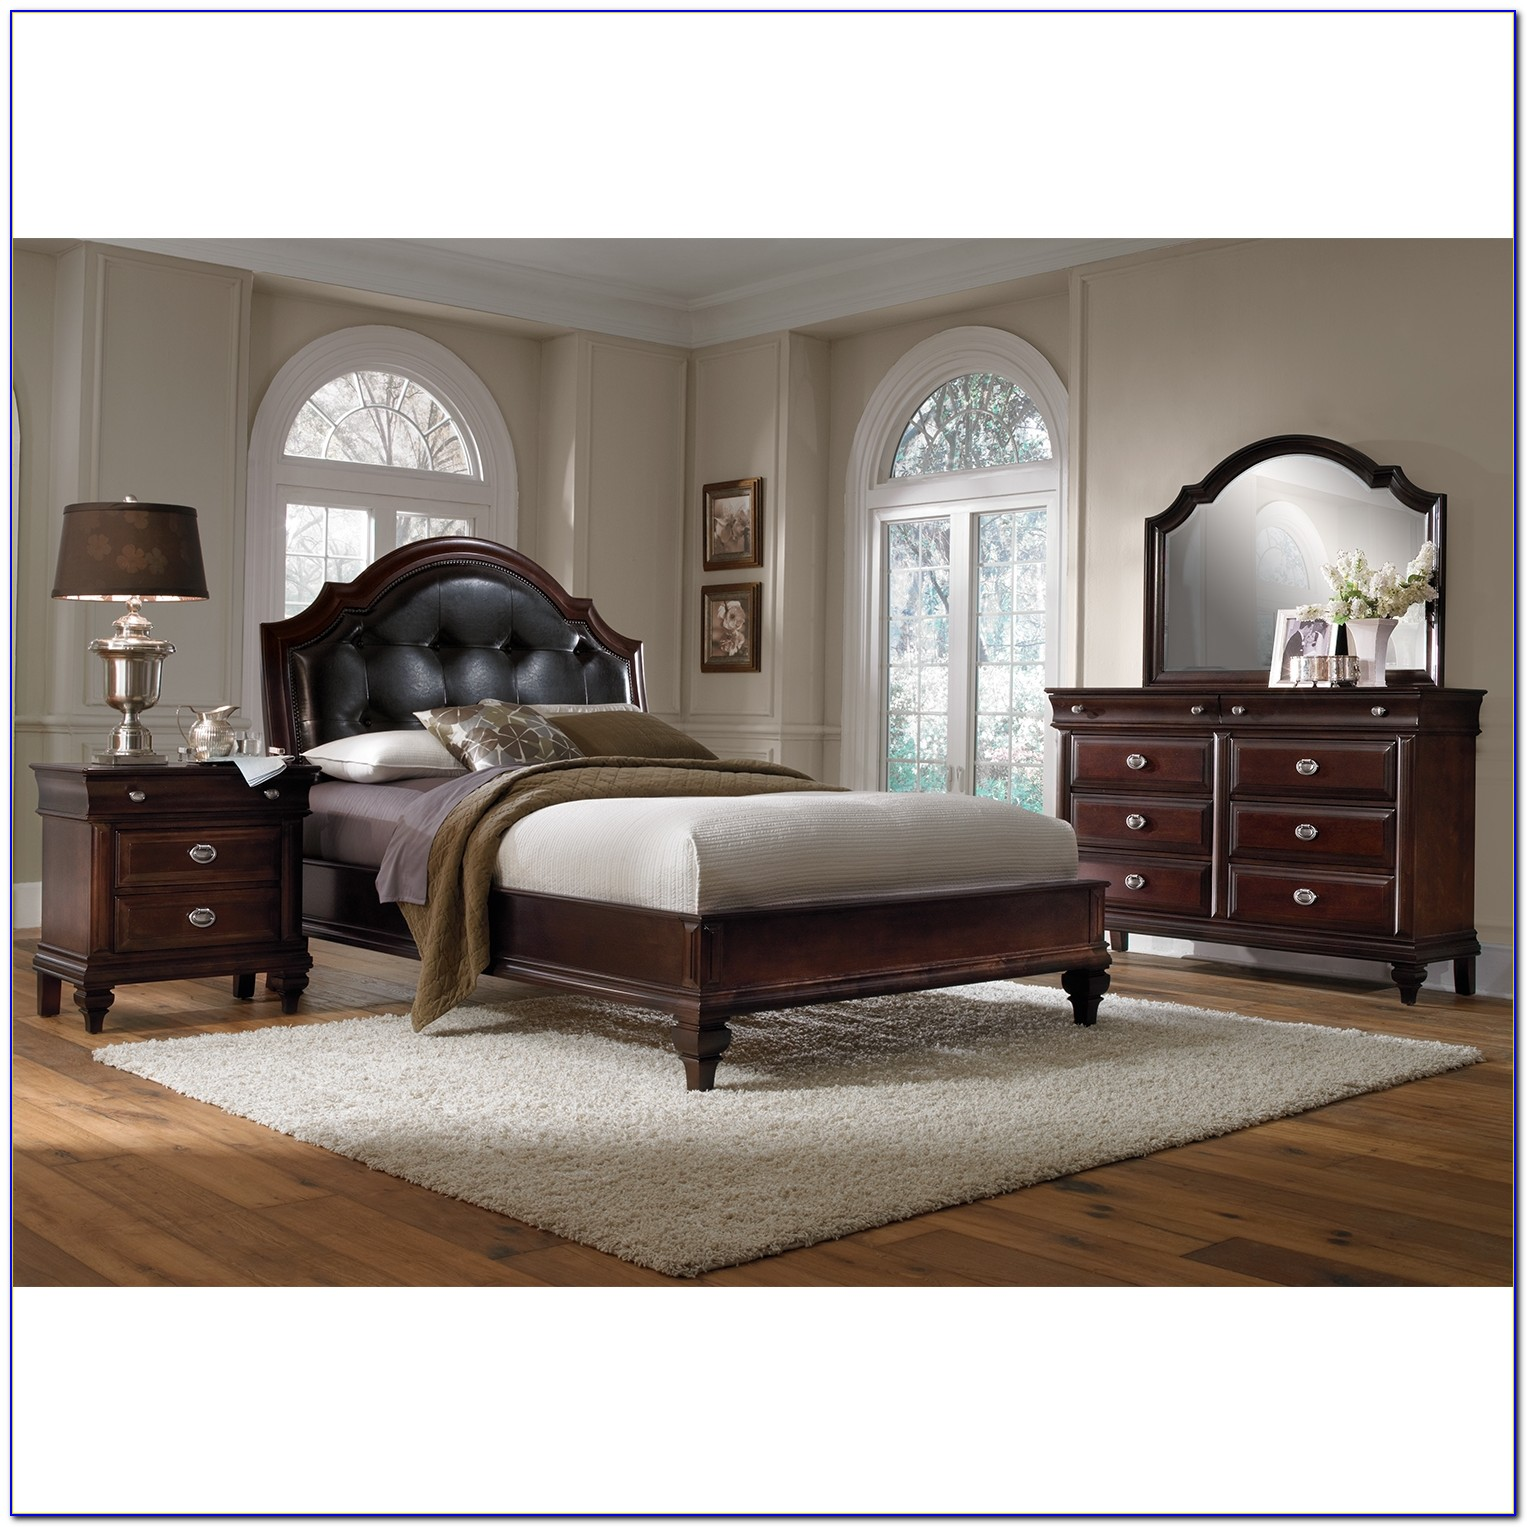 American Signature Furniture Plantation Cove Bedroom